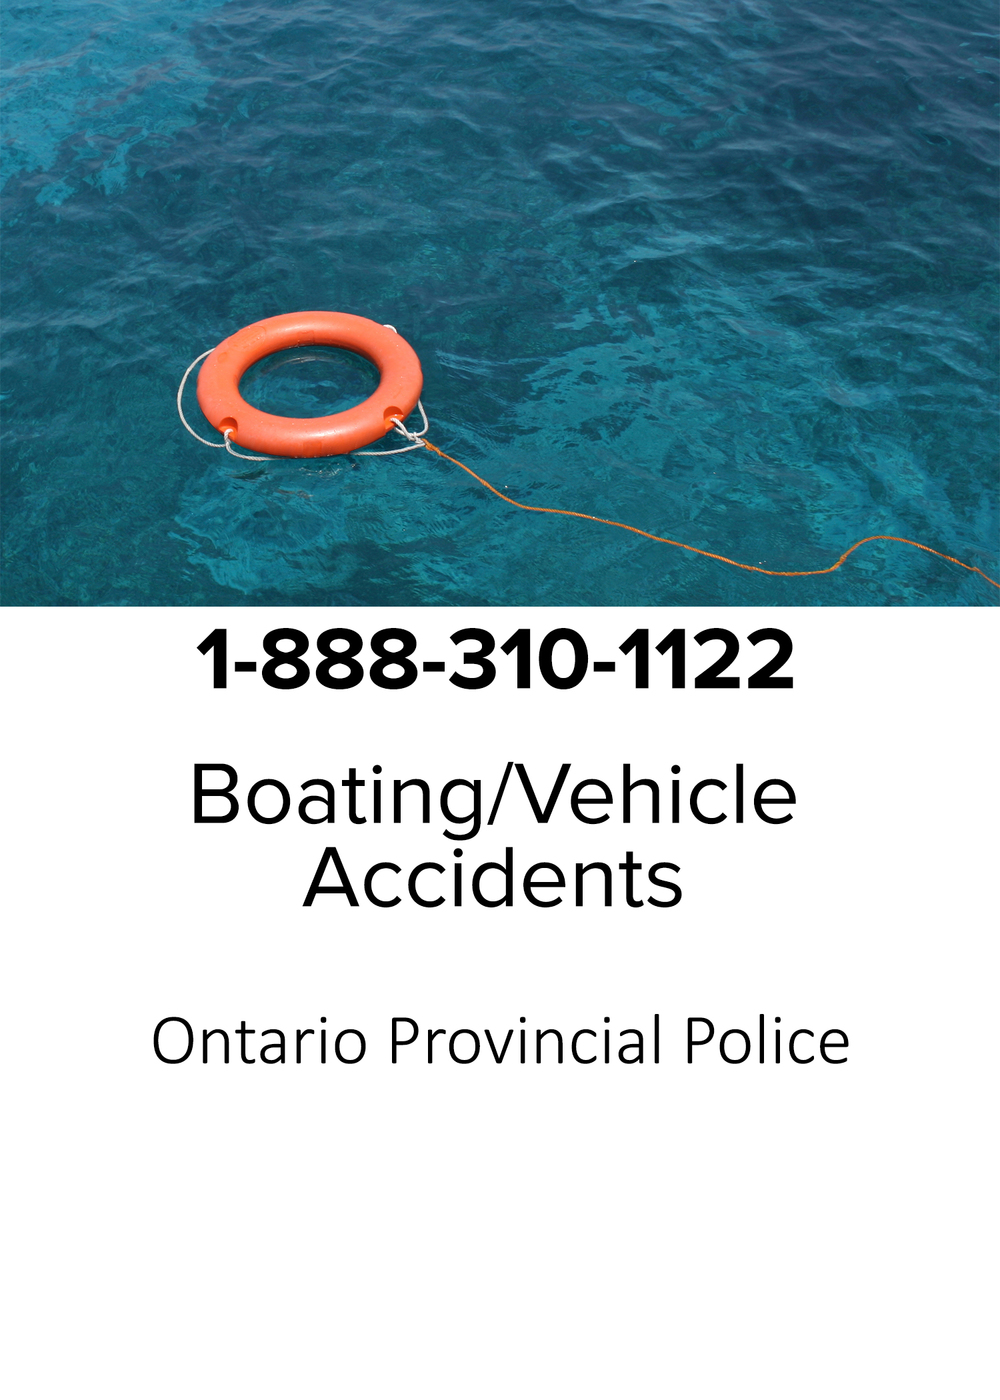 Boating or Vehicle accidents